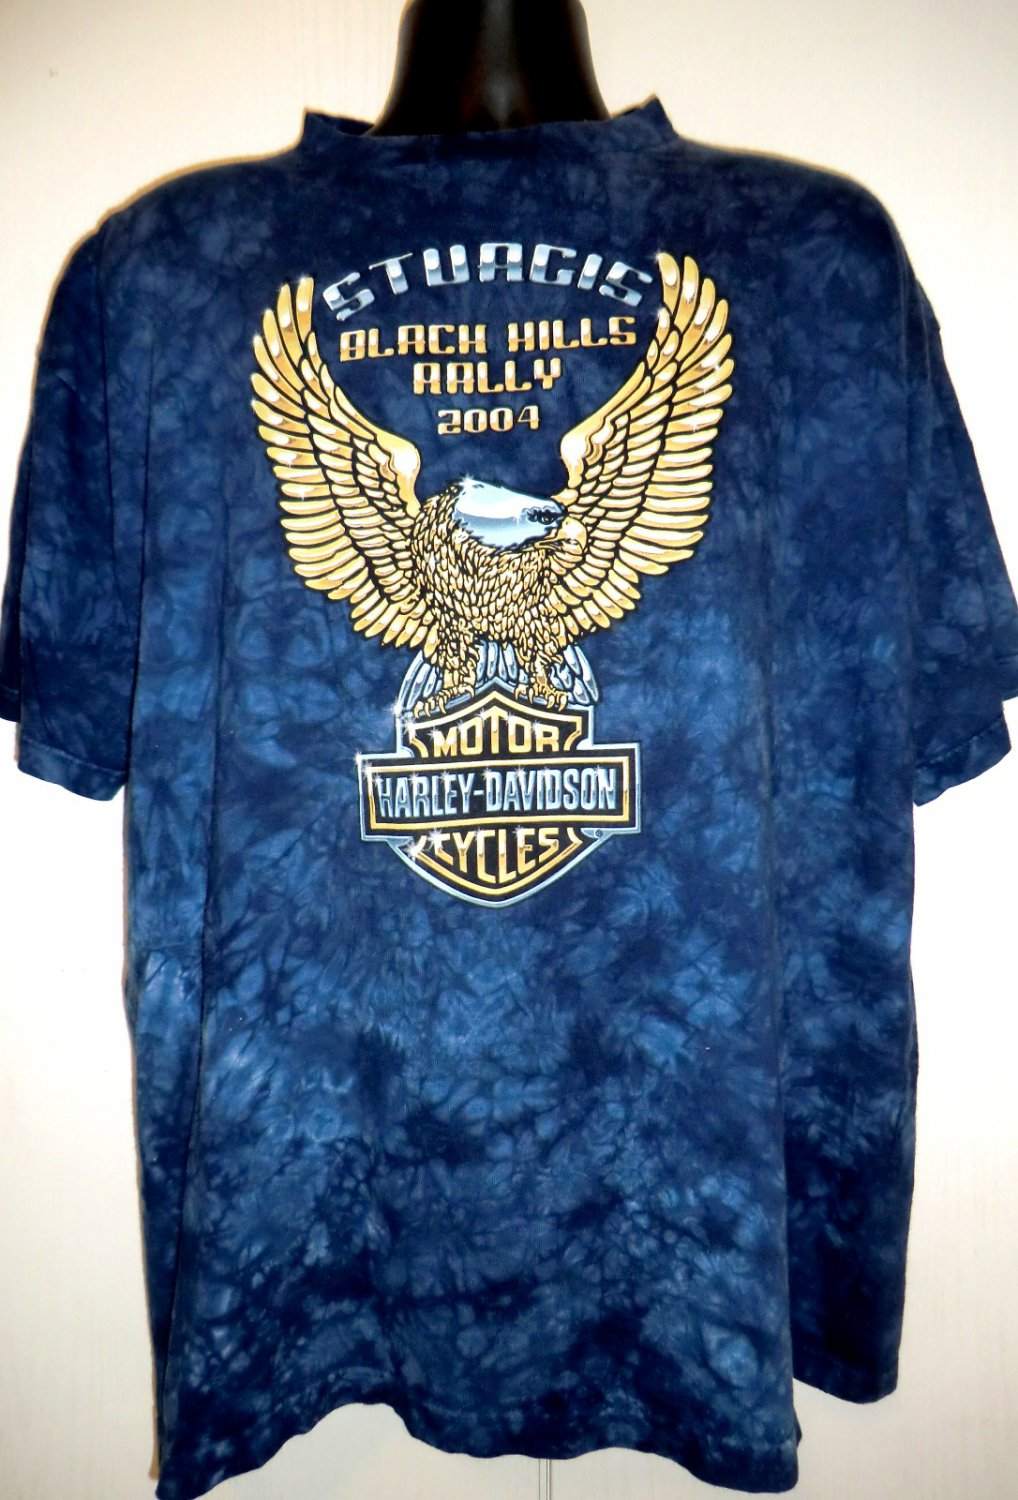 France shirts countries israel t other davidson by harley from catalog long